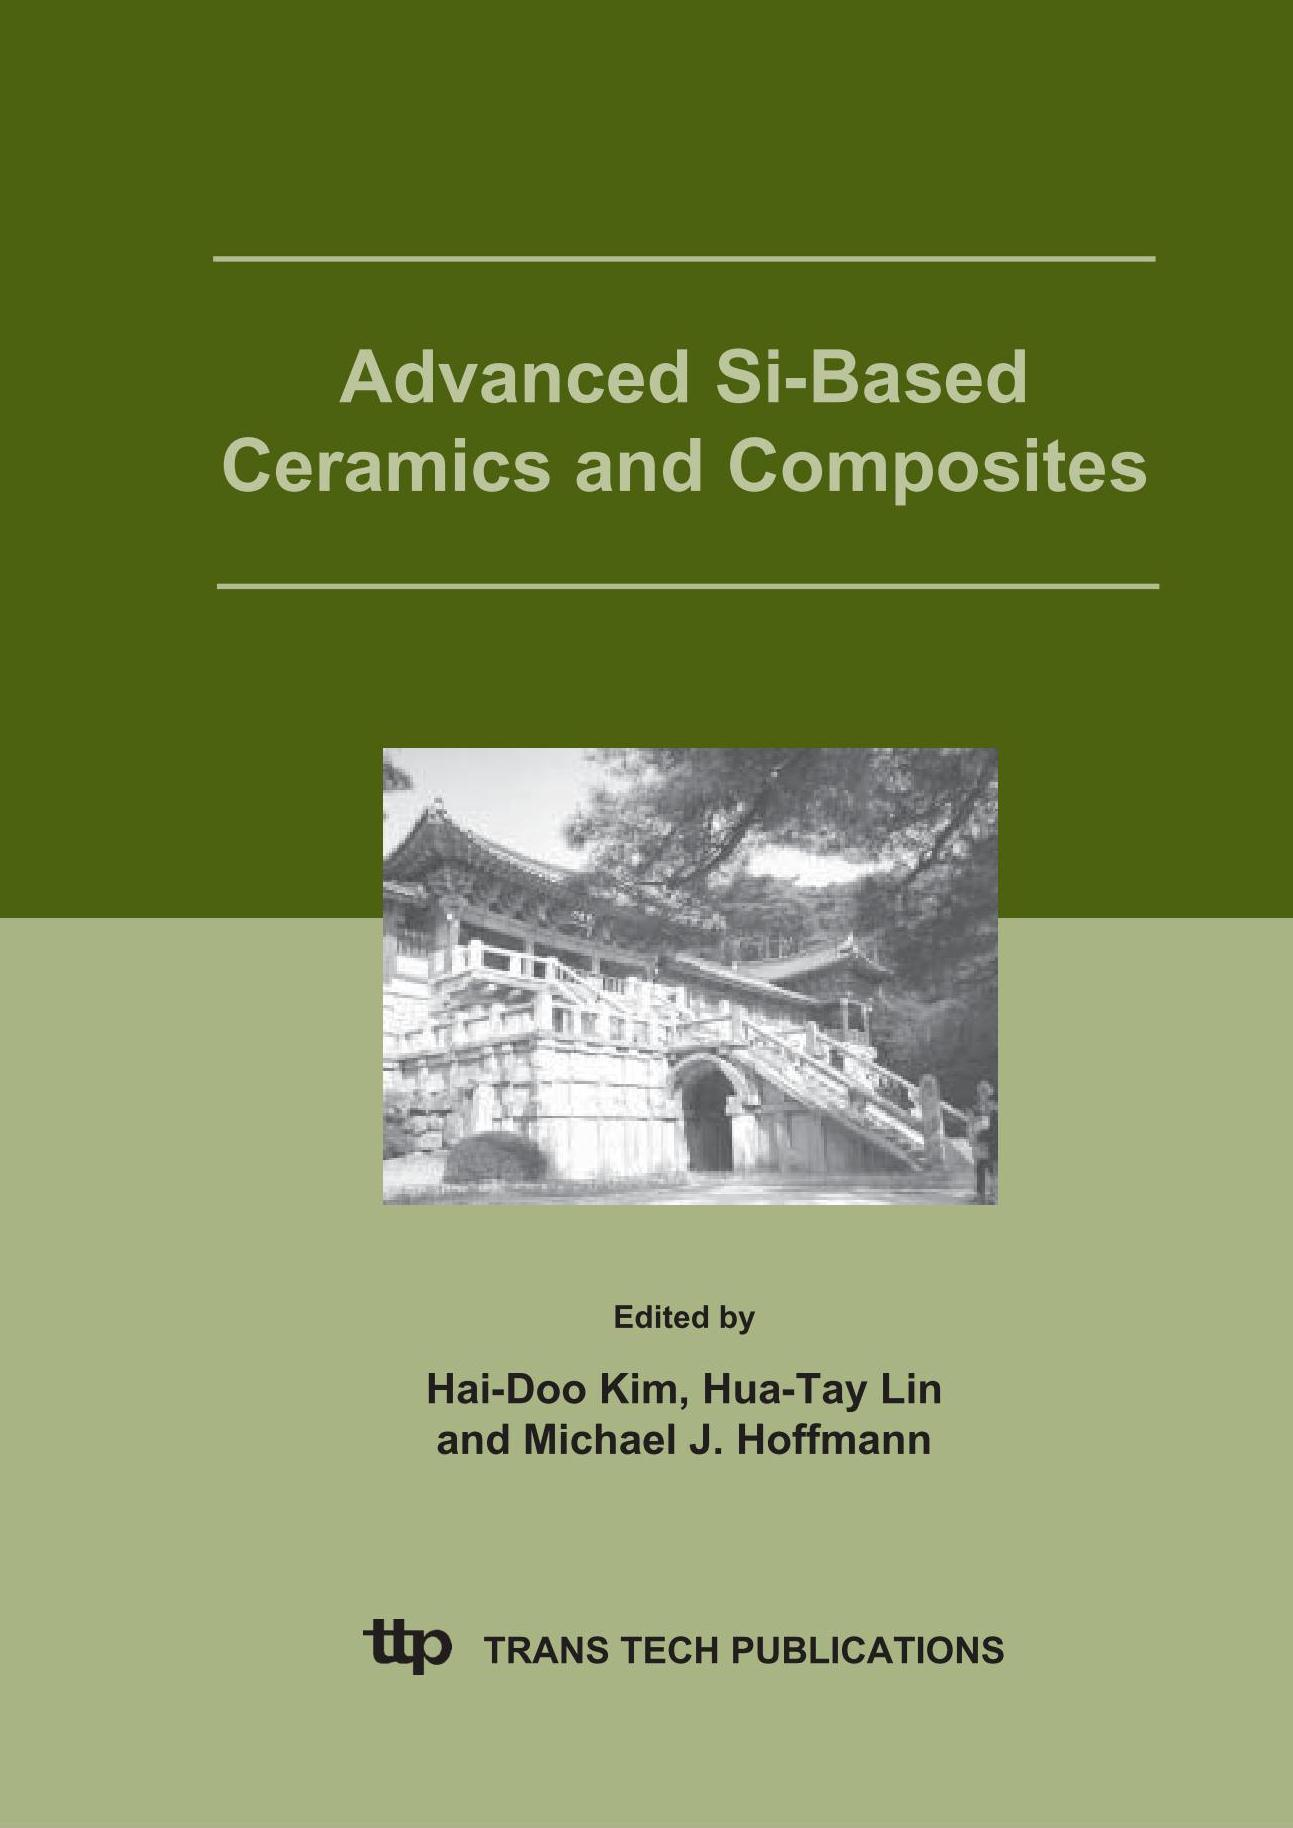 Advanced Si-Based Ceramics and Composites